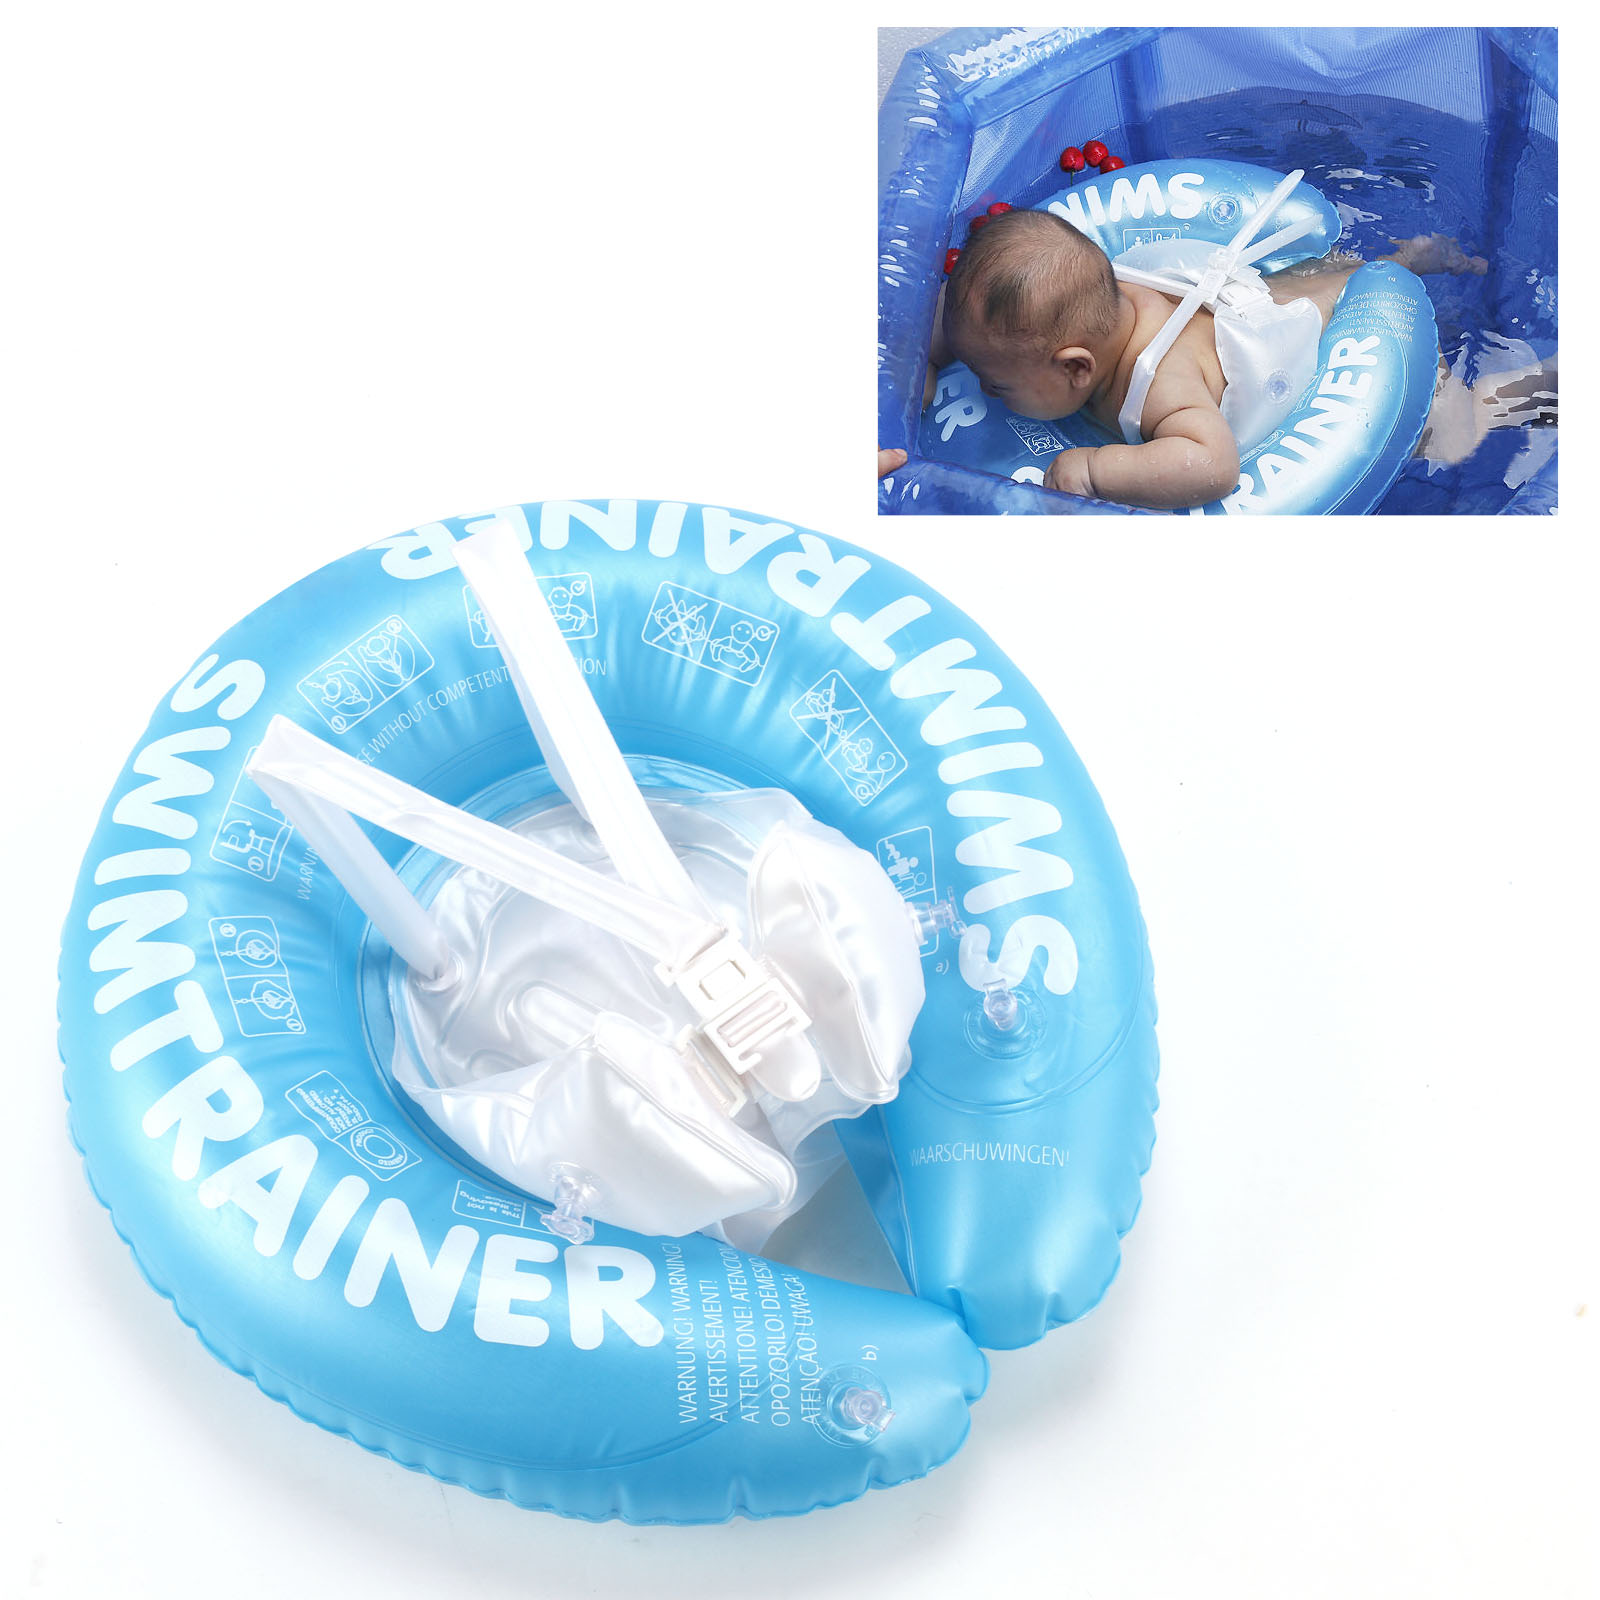 0.5-6 Year Infant Baby Toddler Inflatable Pool Swim Ring